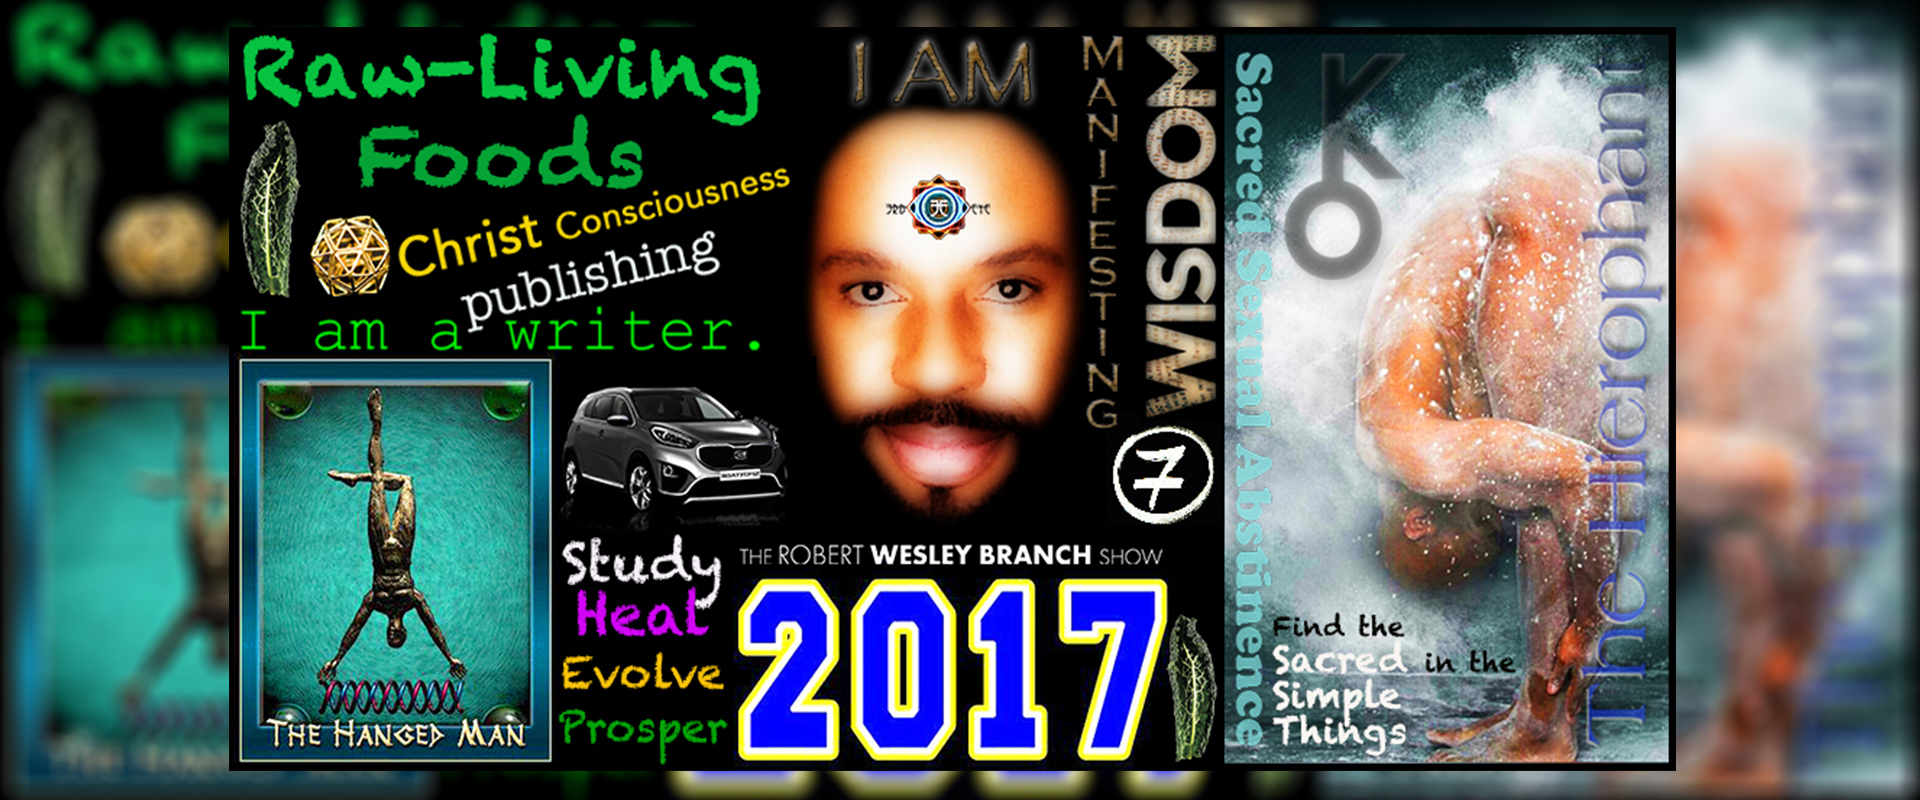 Permalink to: The Wisdom Writings of Robert Wesley Branch